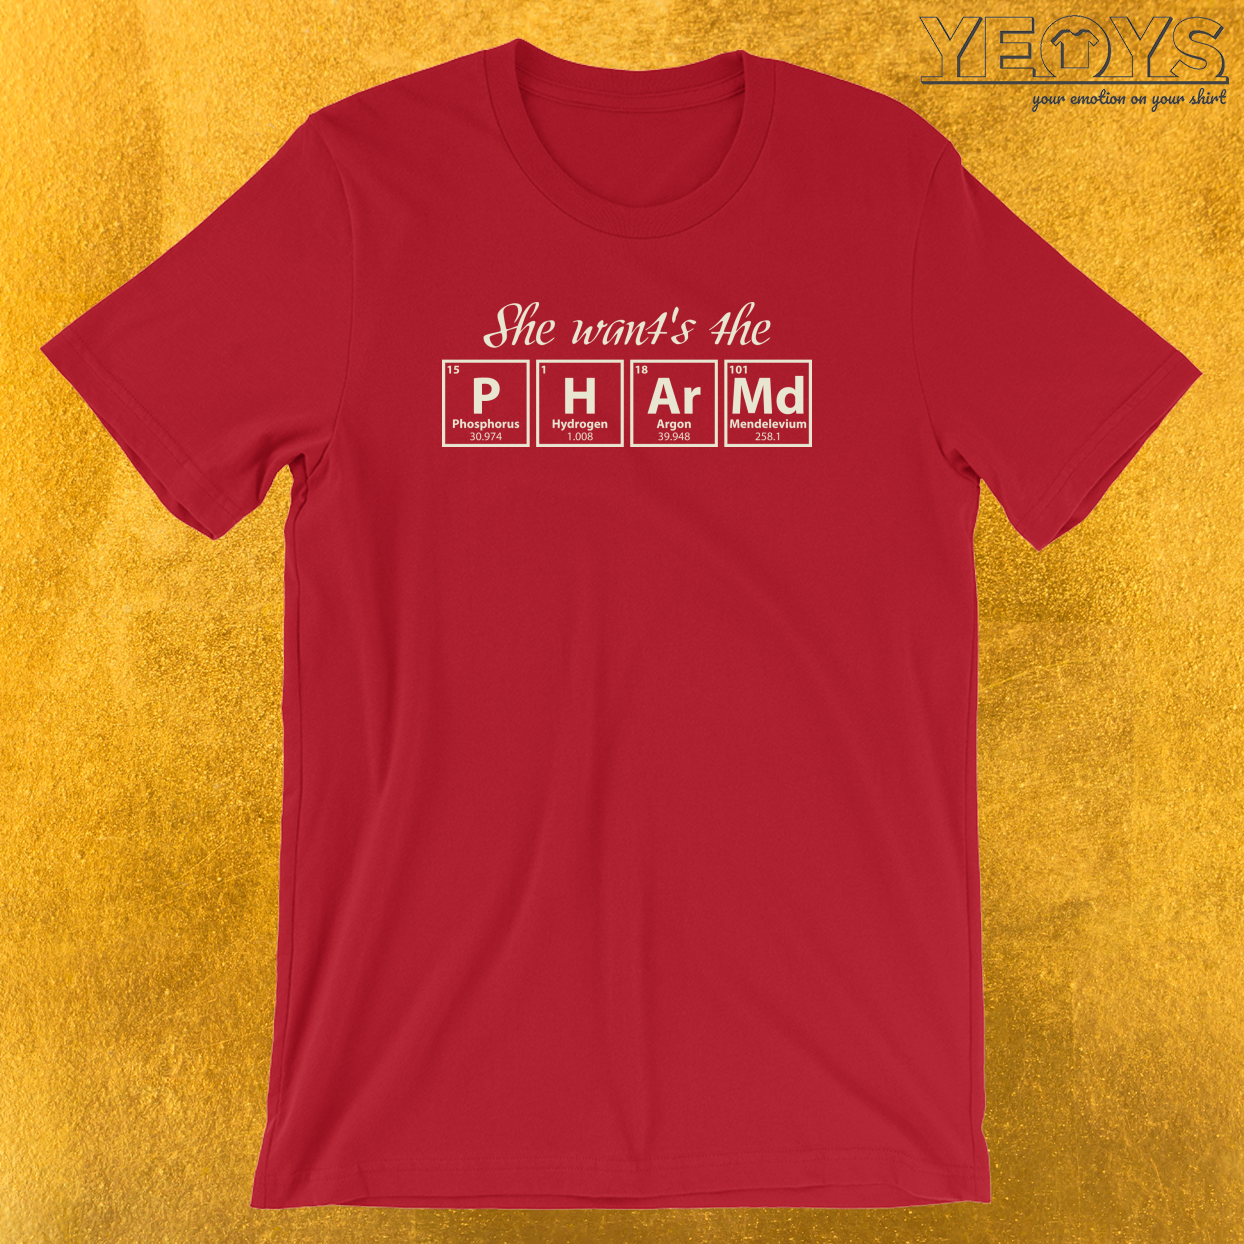 She Want's The Pharm.D. Chemical Elements T-Shirt